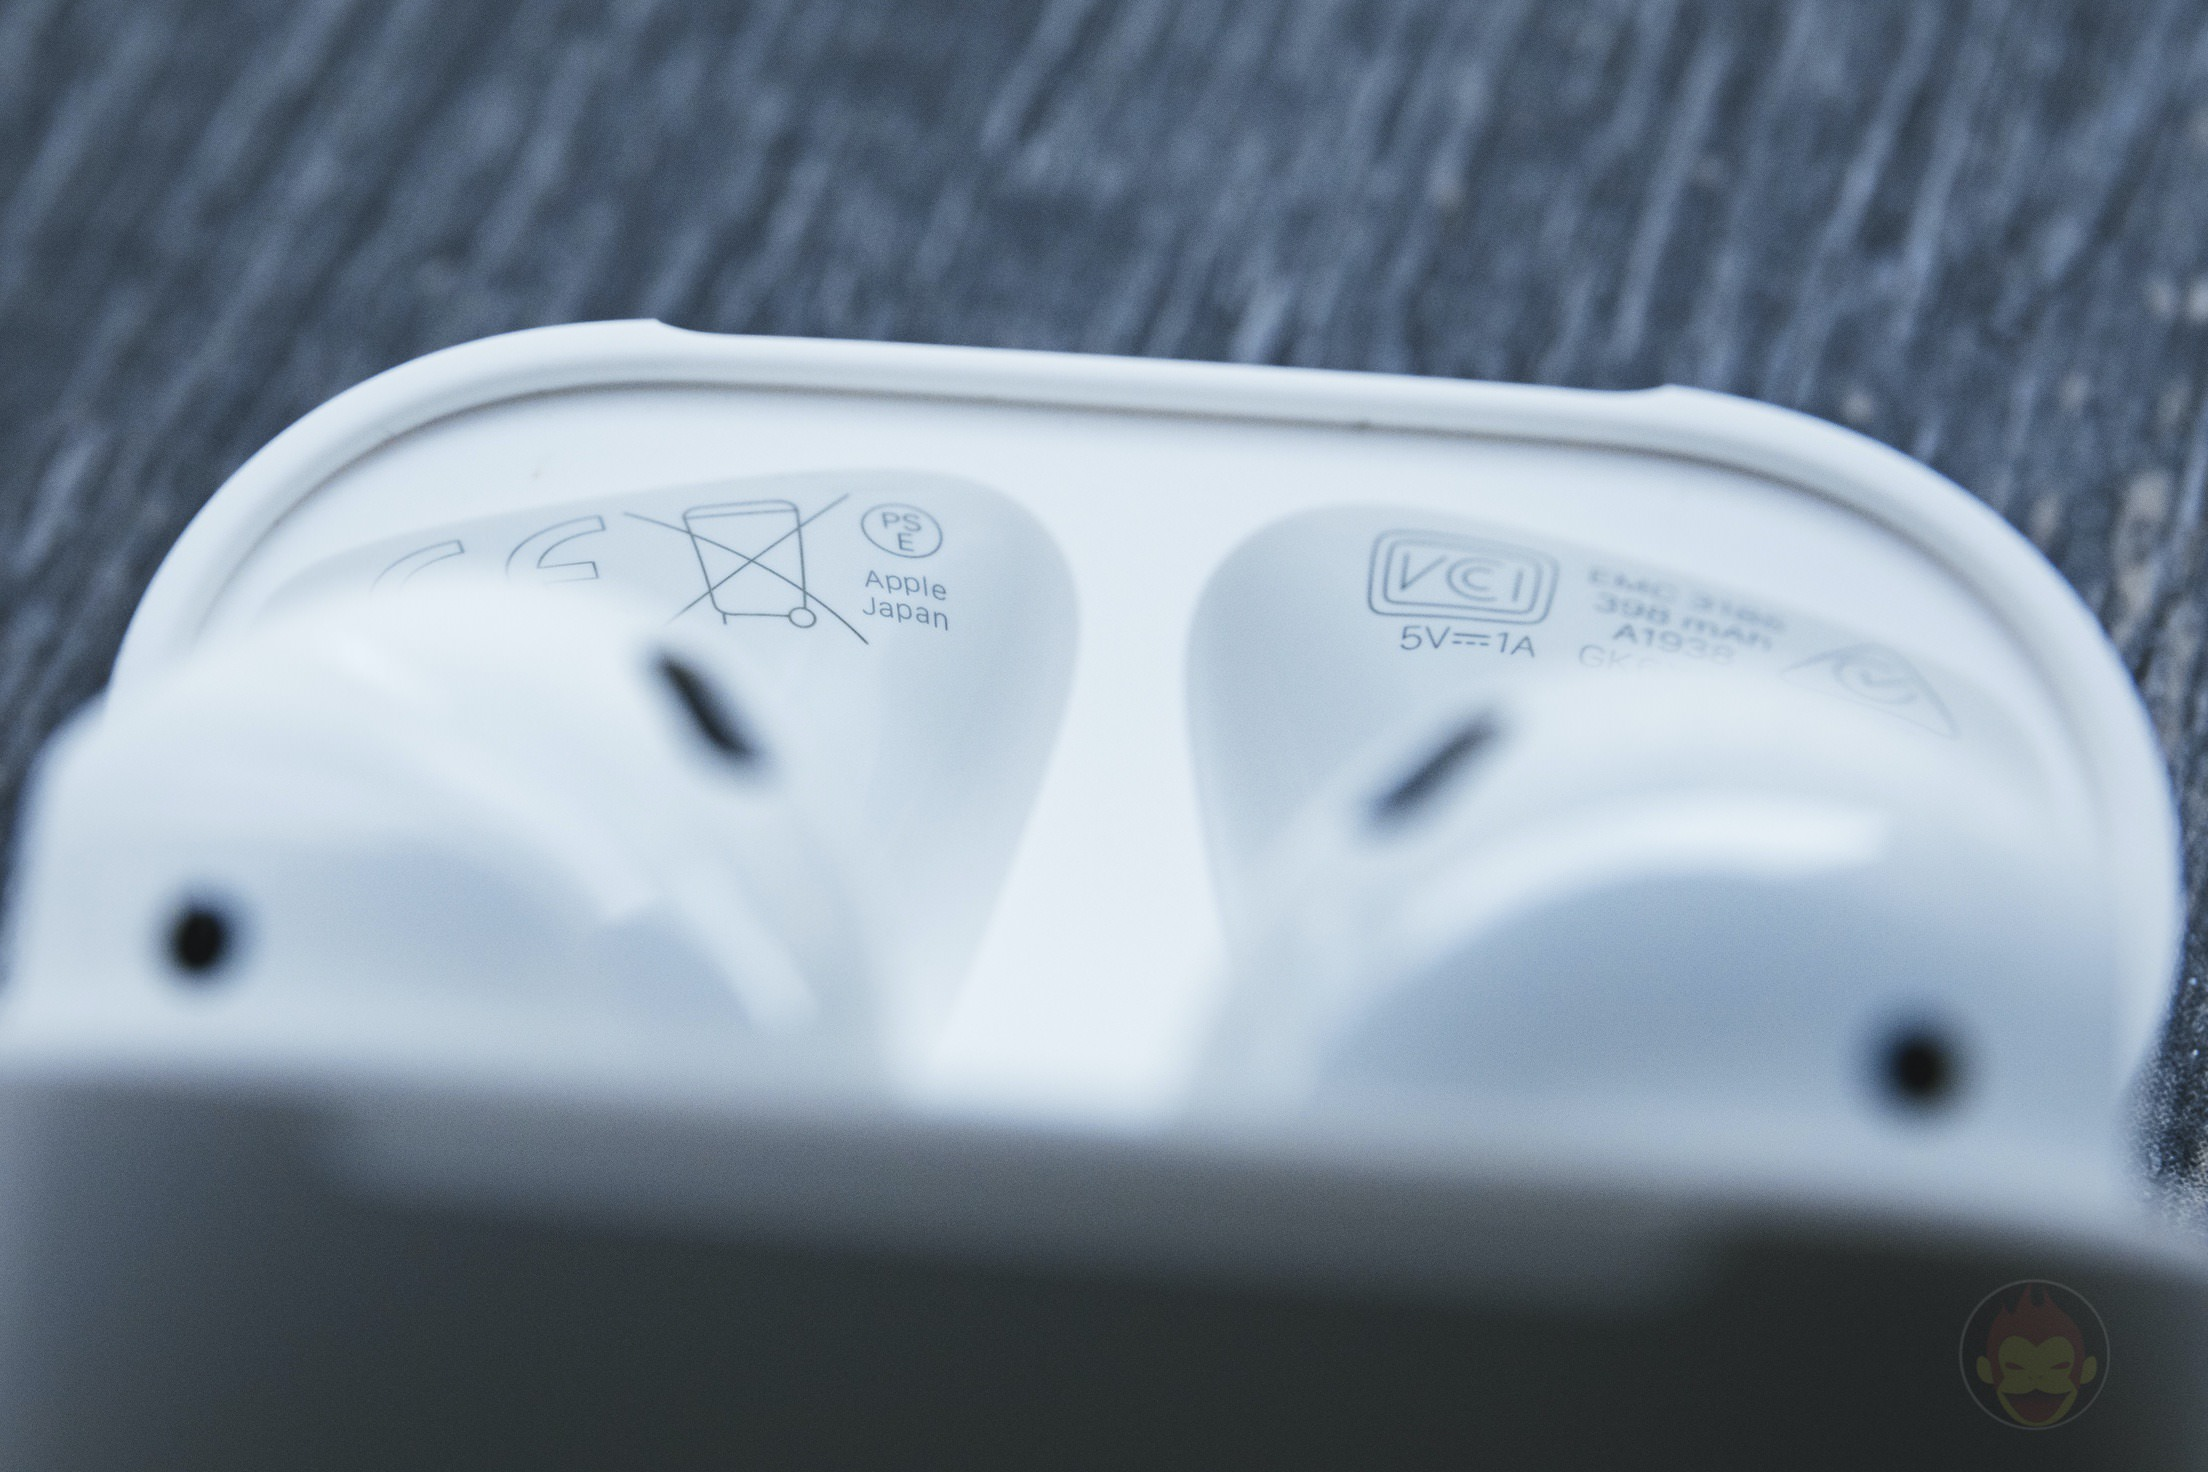 AirPods-2nd-Generation-2019-Review-11.jpg